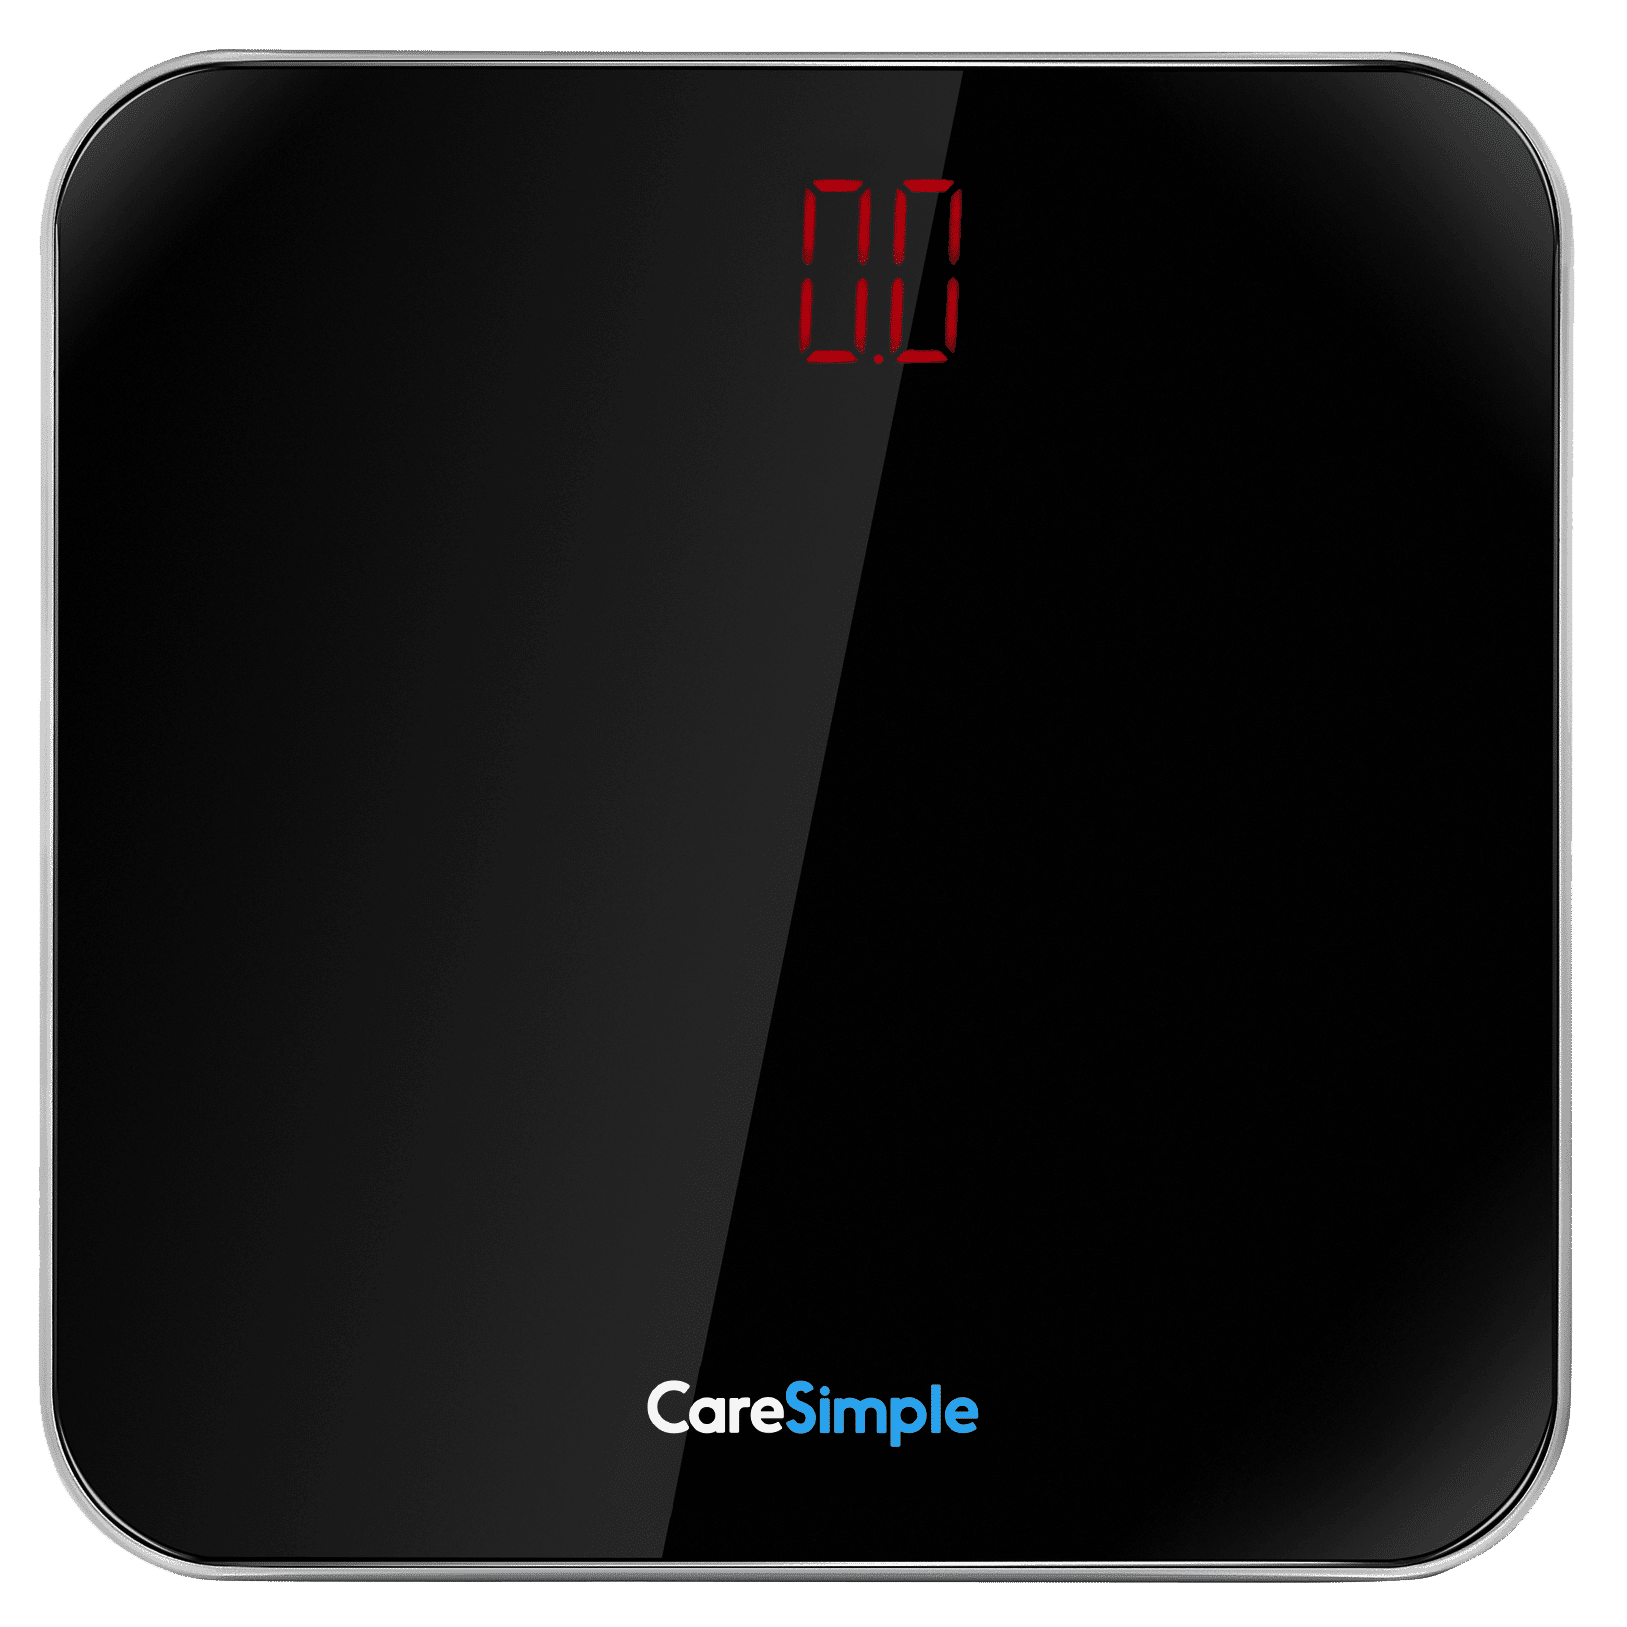 CareSimple 4G Body Weight Scale